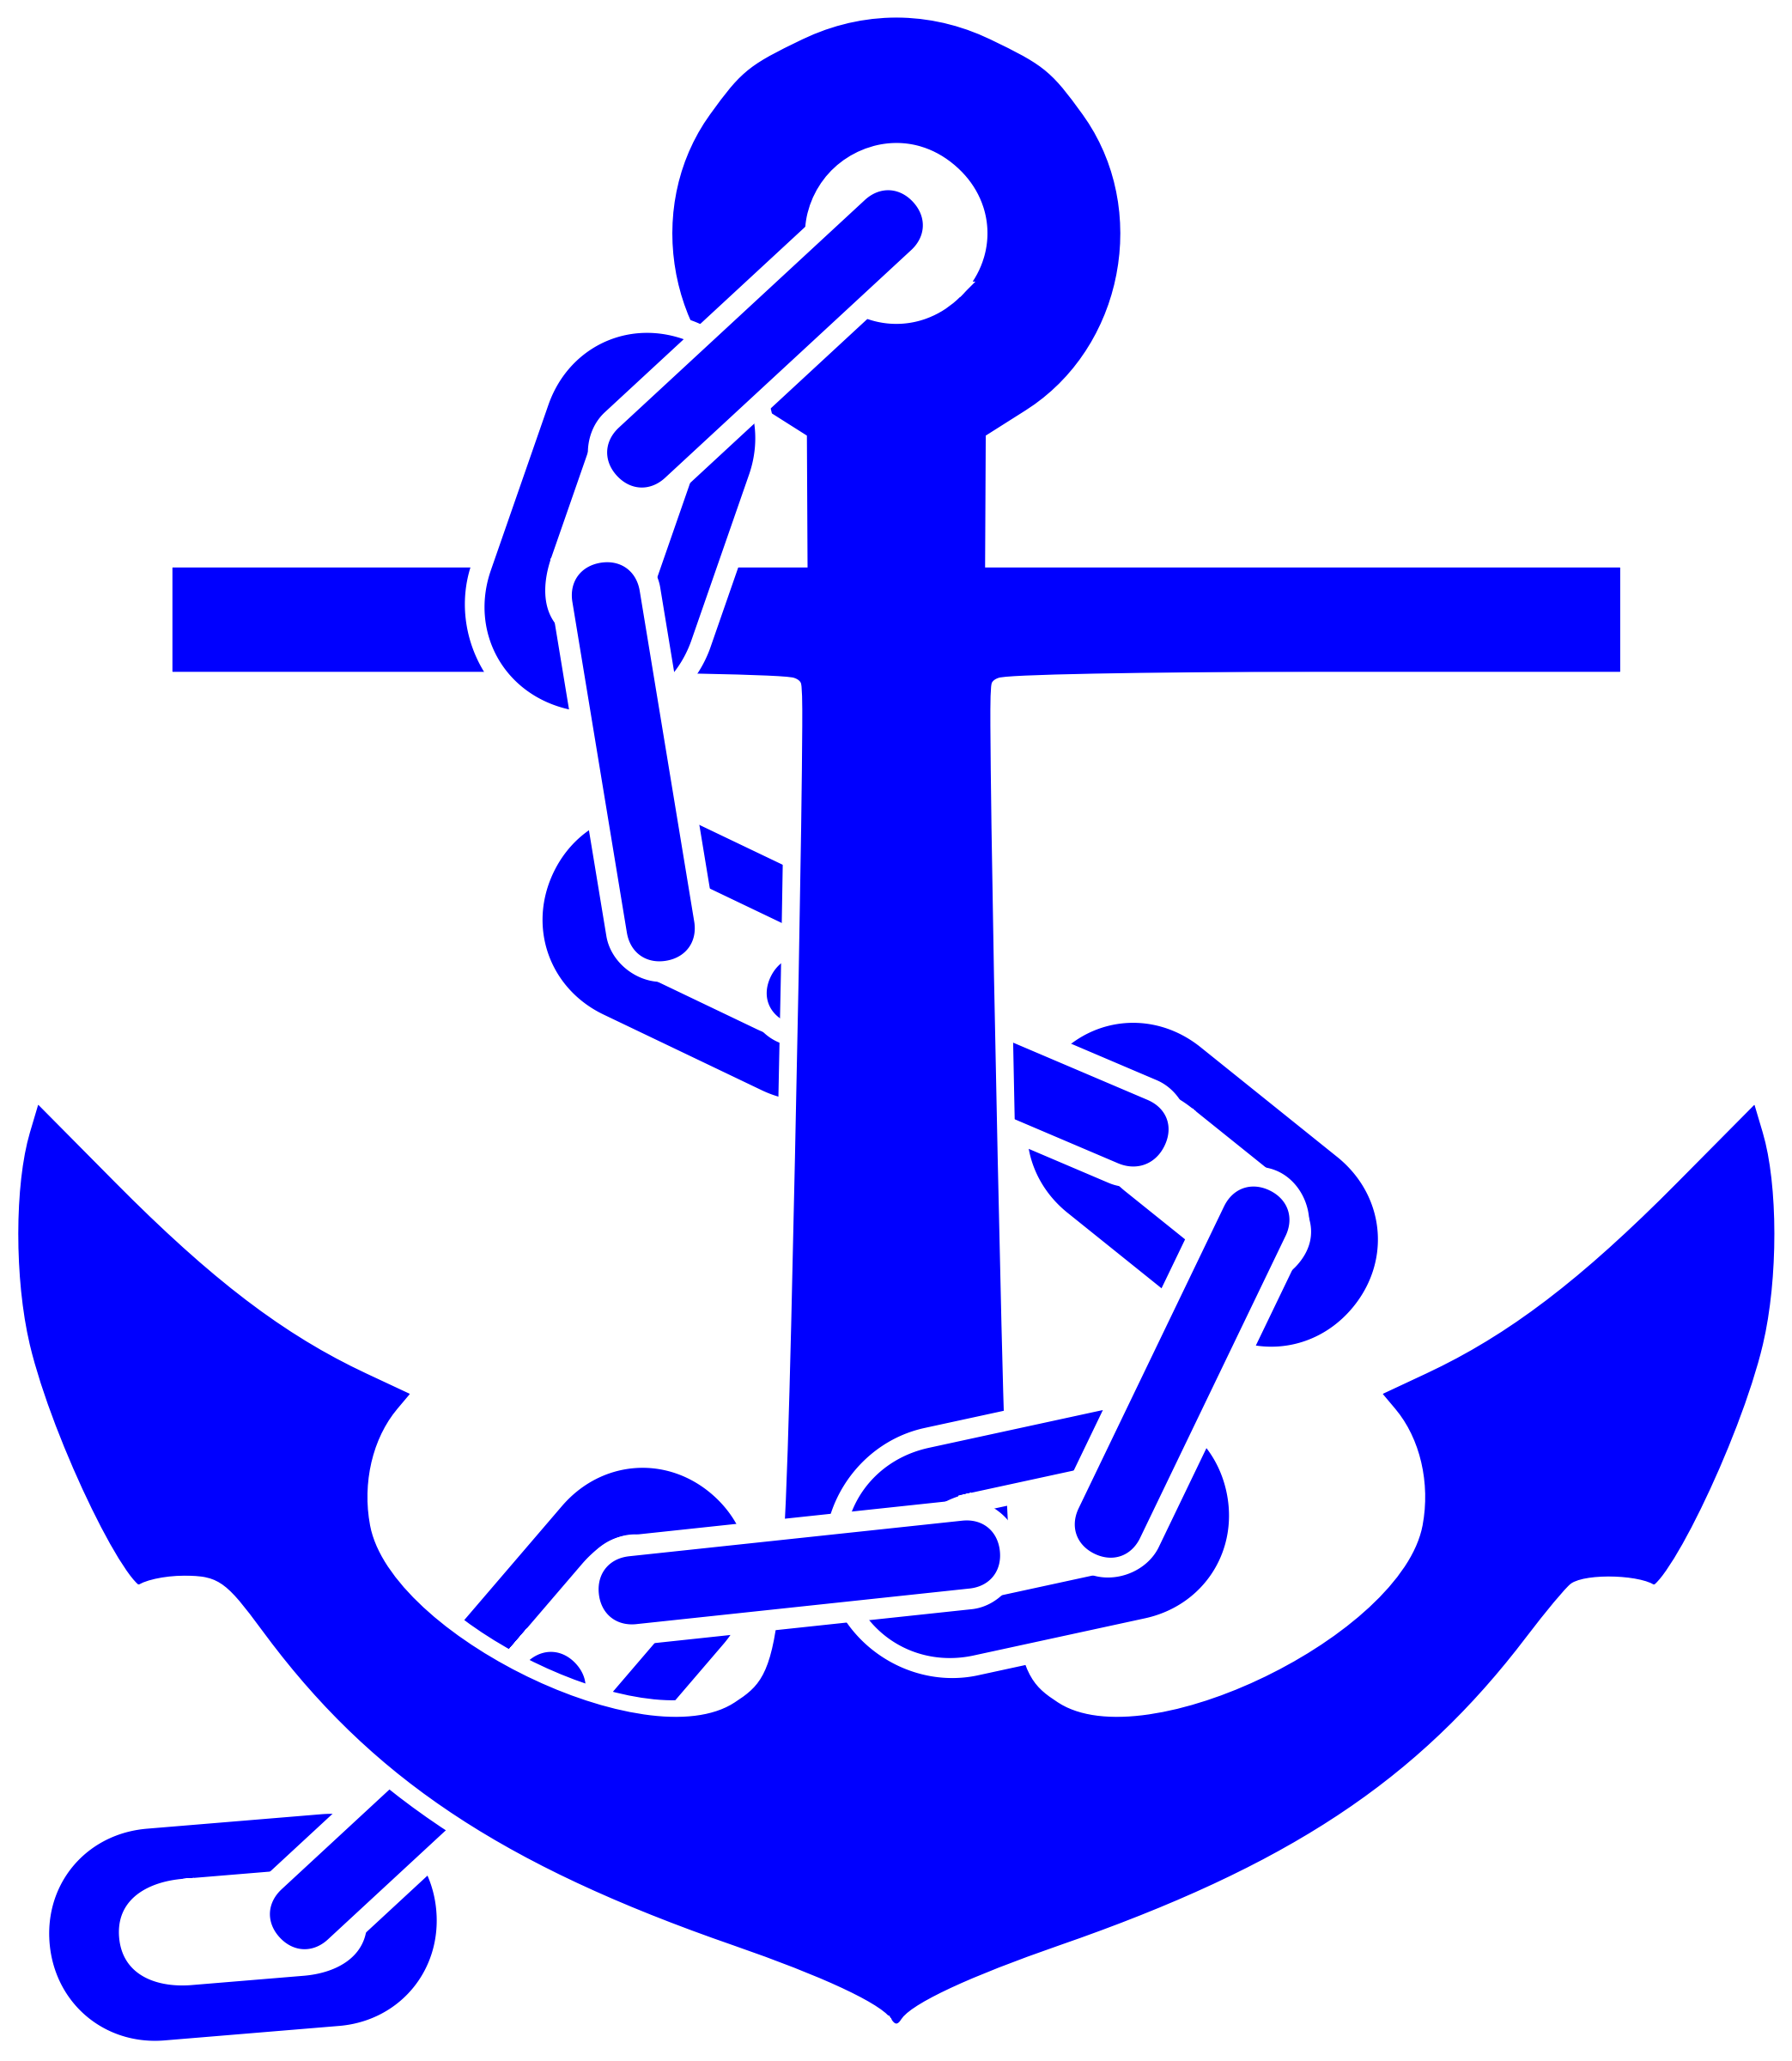 Anchor with chain clipart.